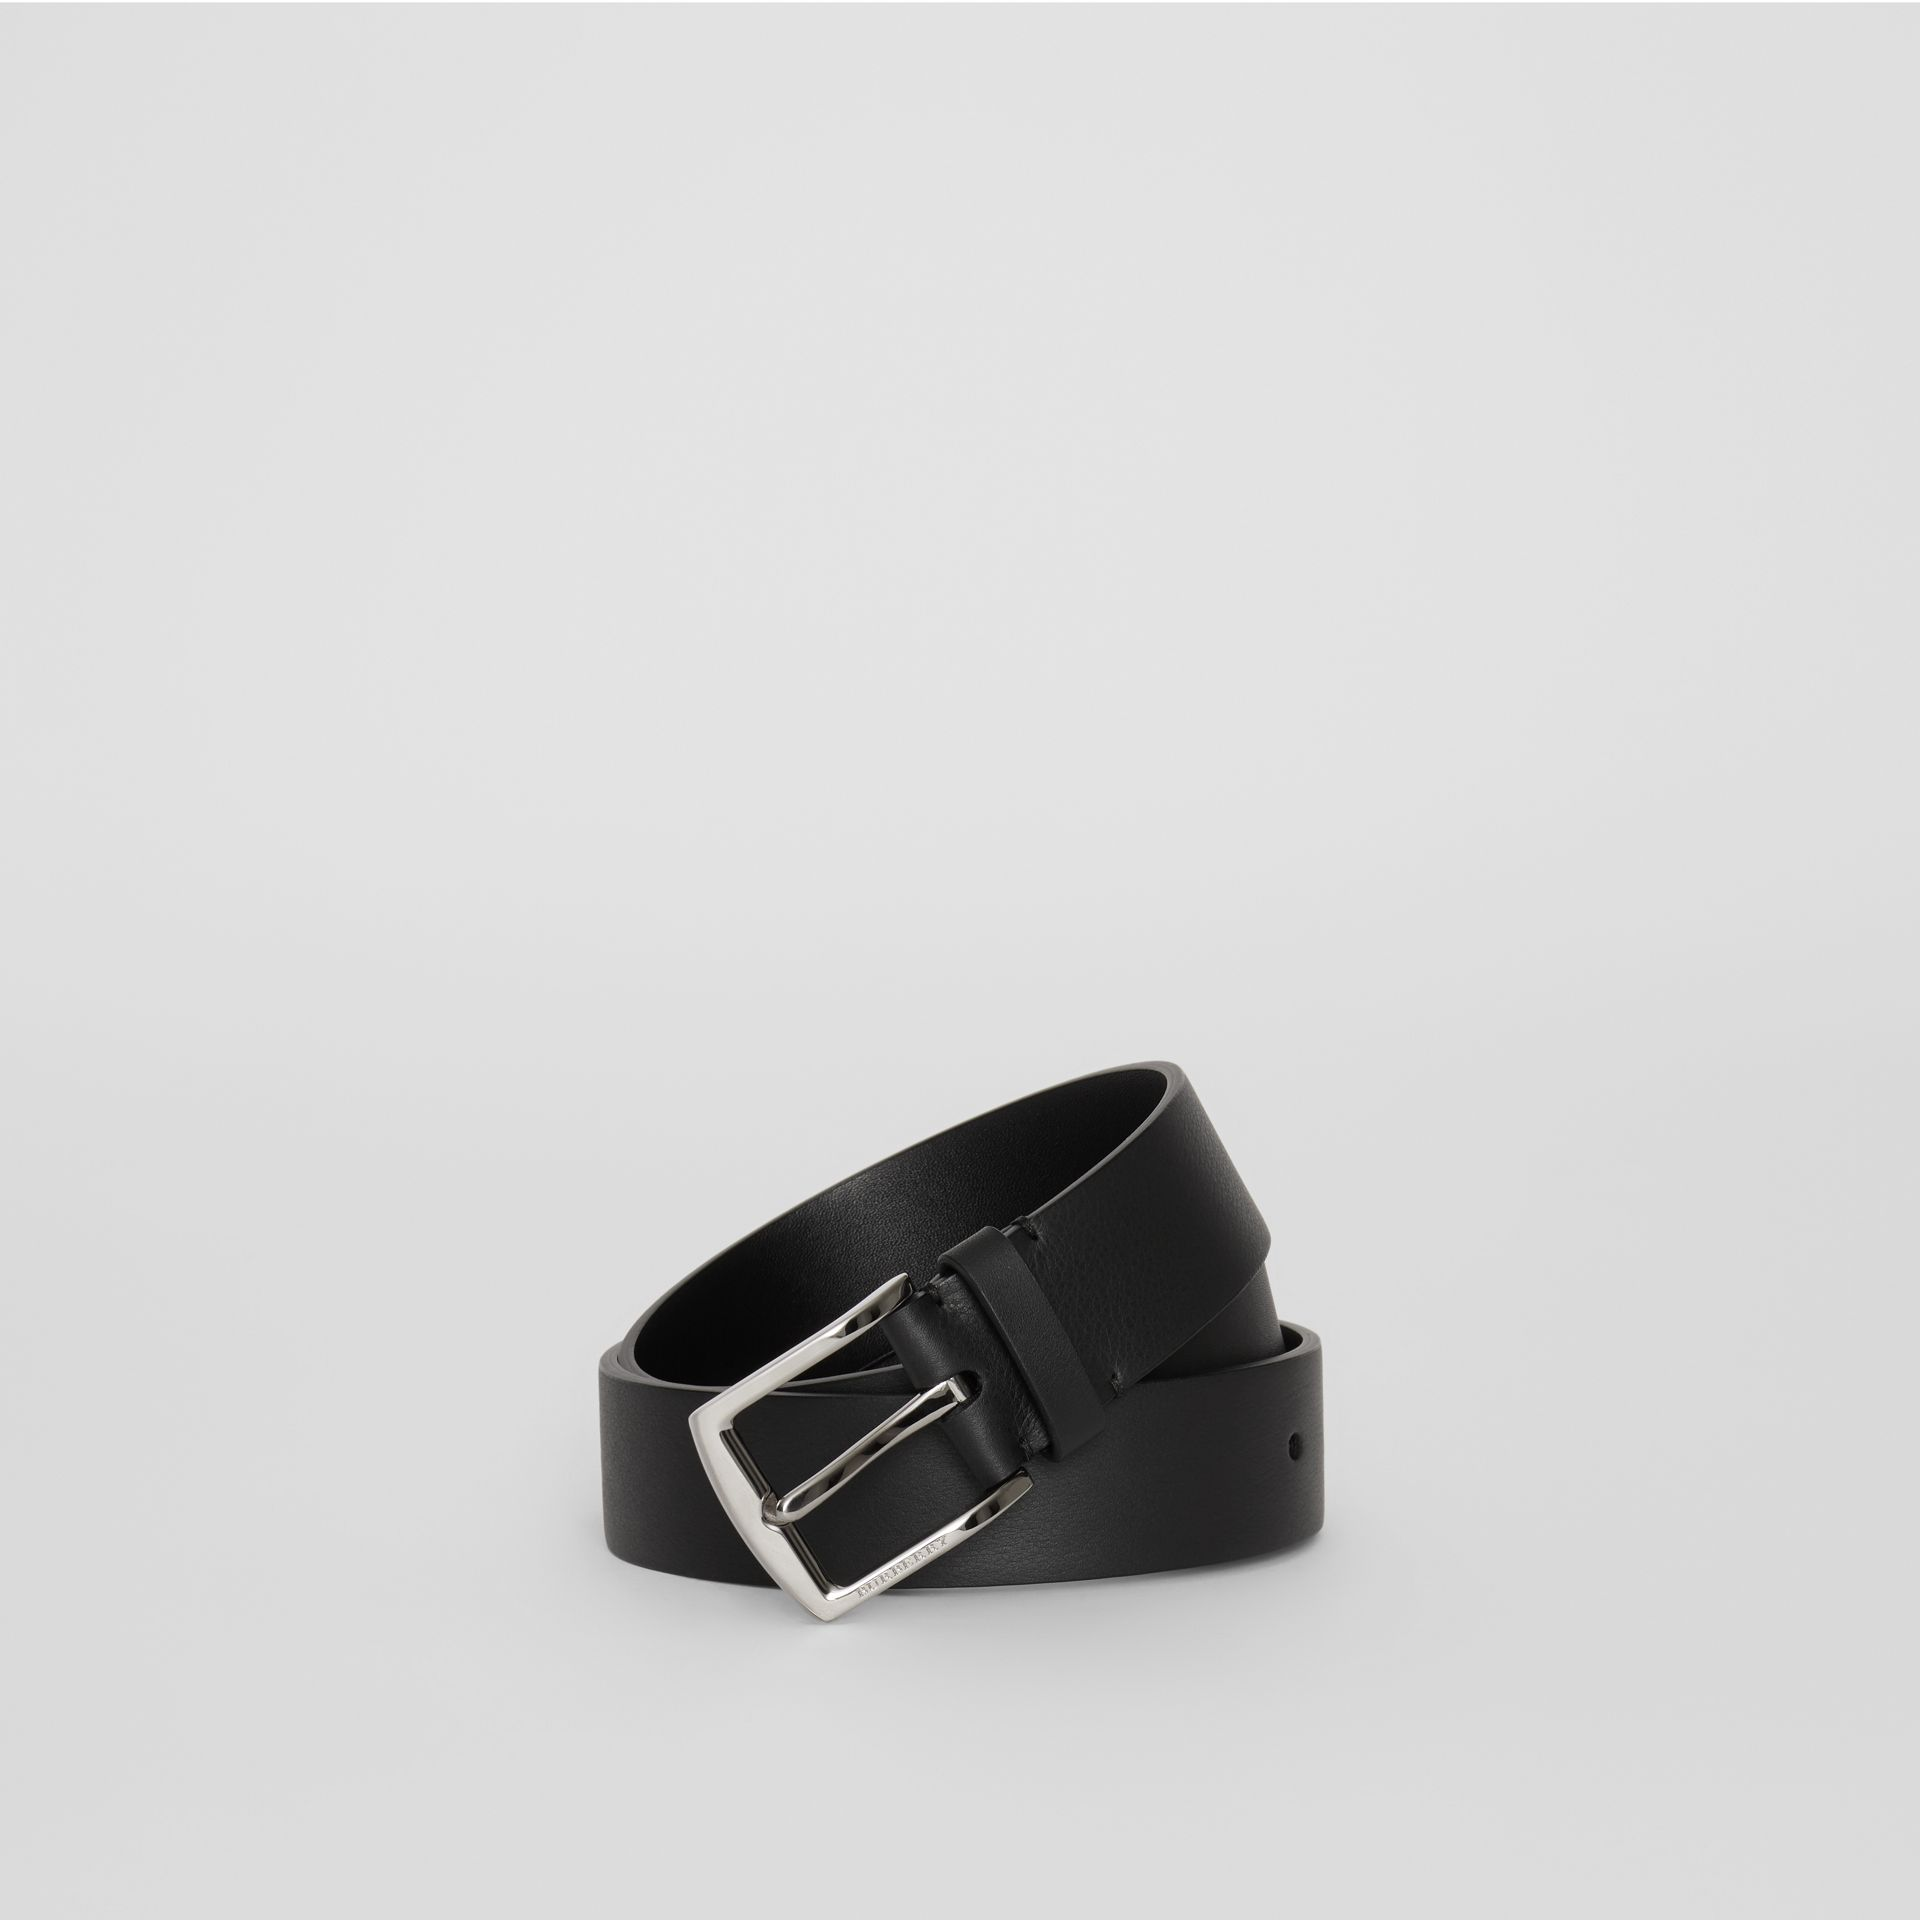 Embossed Crest Leather Belt in Black - Men | Burberry Singapore - gallery image 0